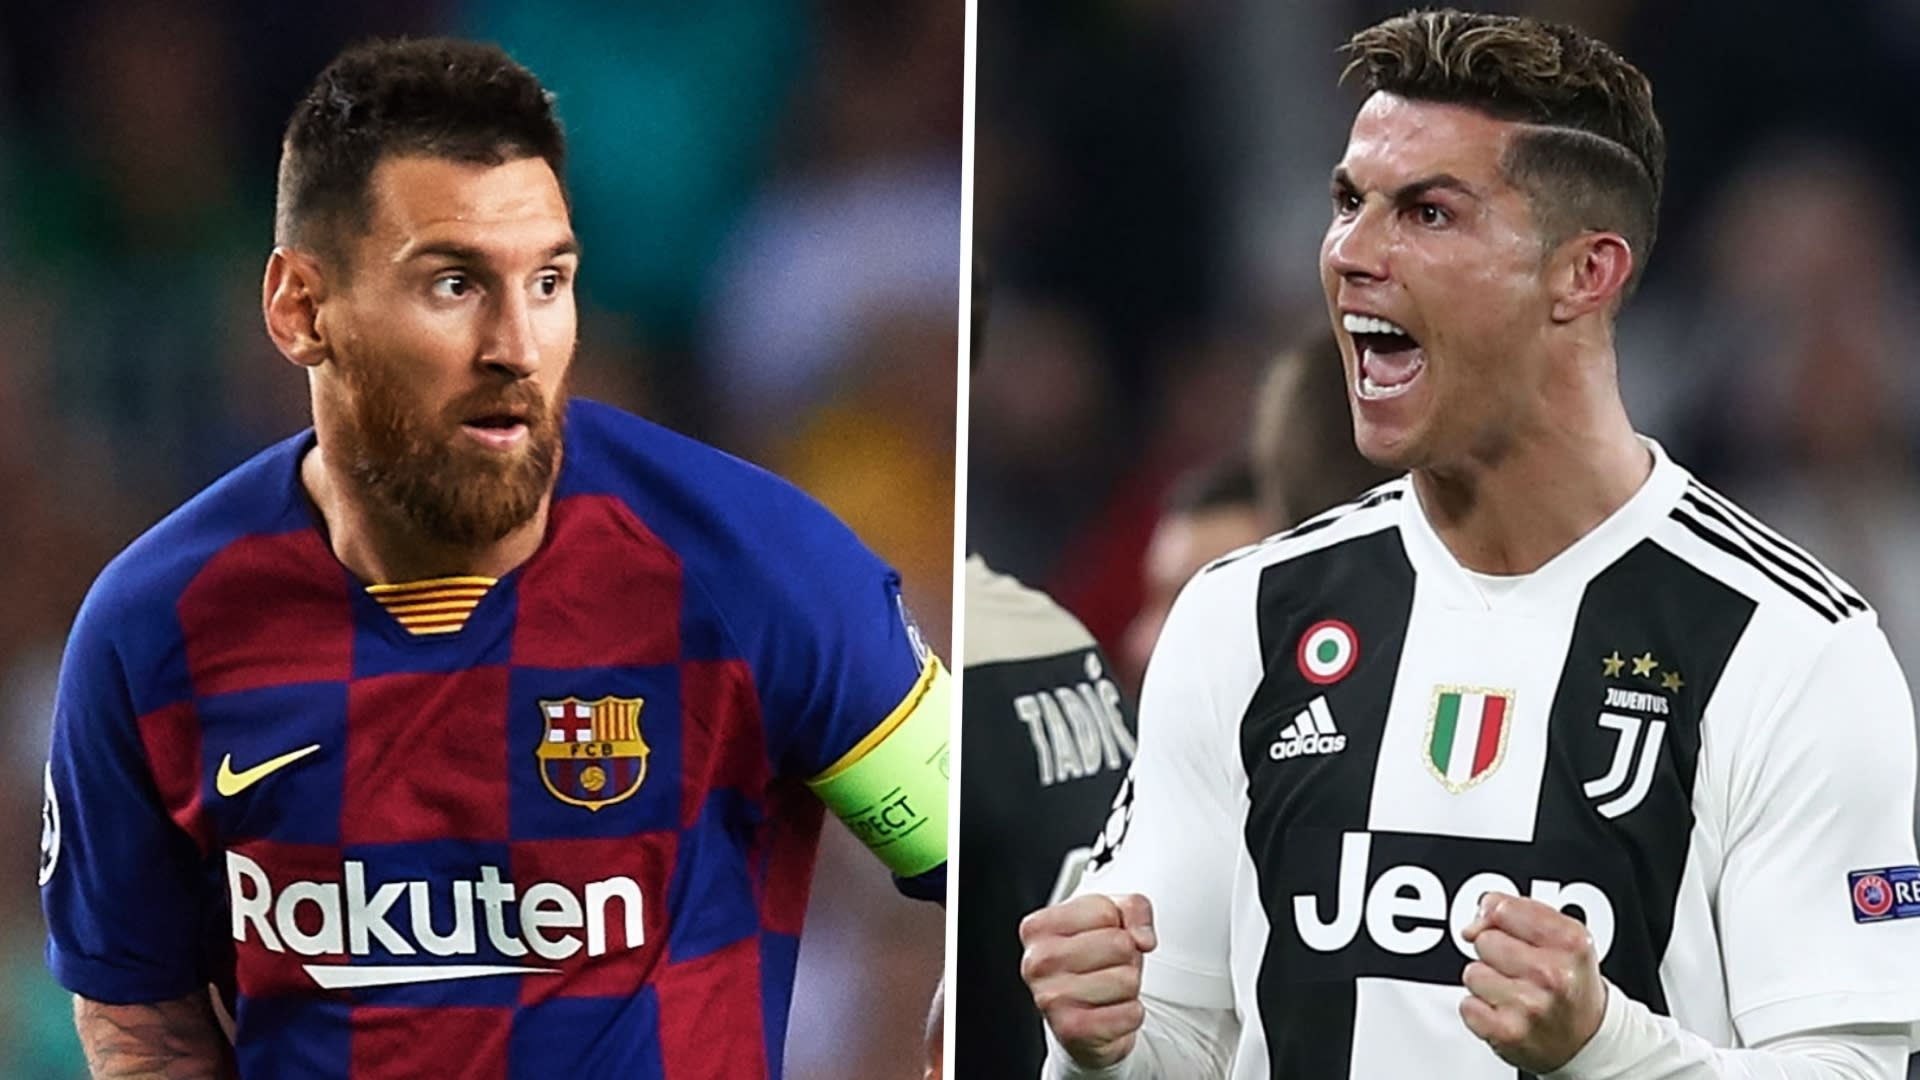 Fifa 21 Ratings Messi Beats Ronaldo As Best Player In New Game As Ea Sports Reveal Top 100